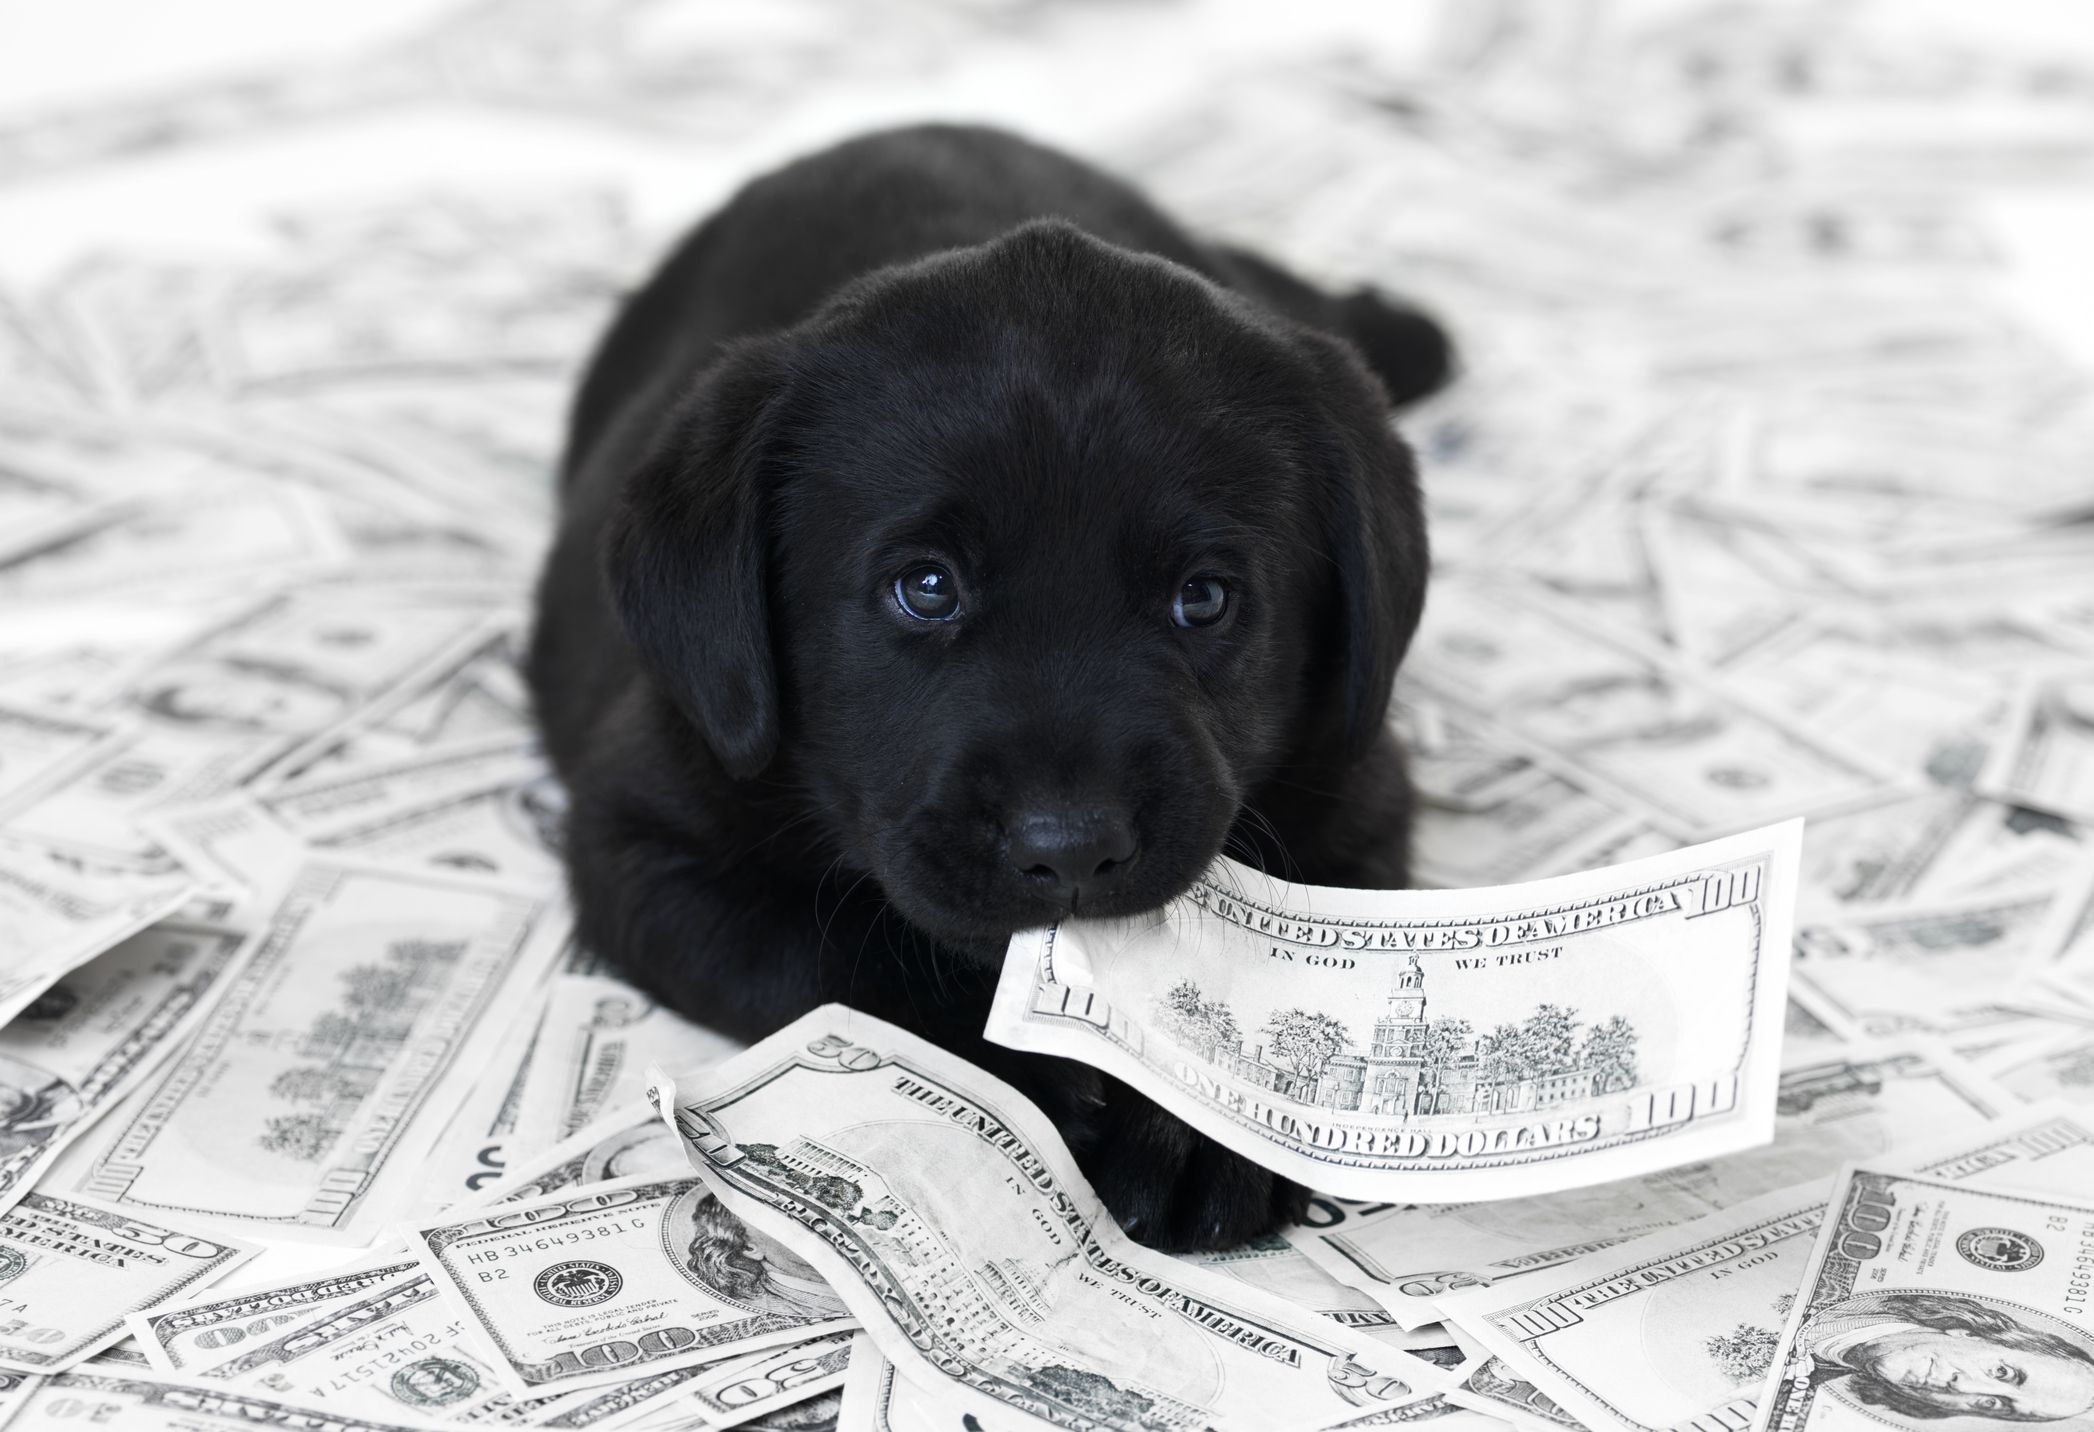 Dog laying on money and holding a bill in his teeth